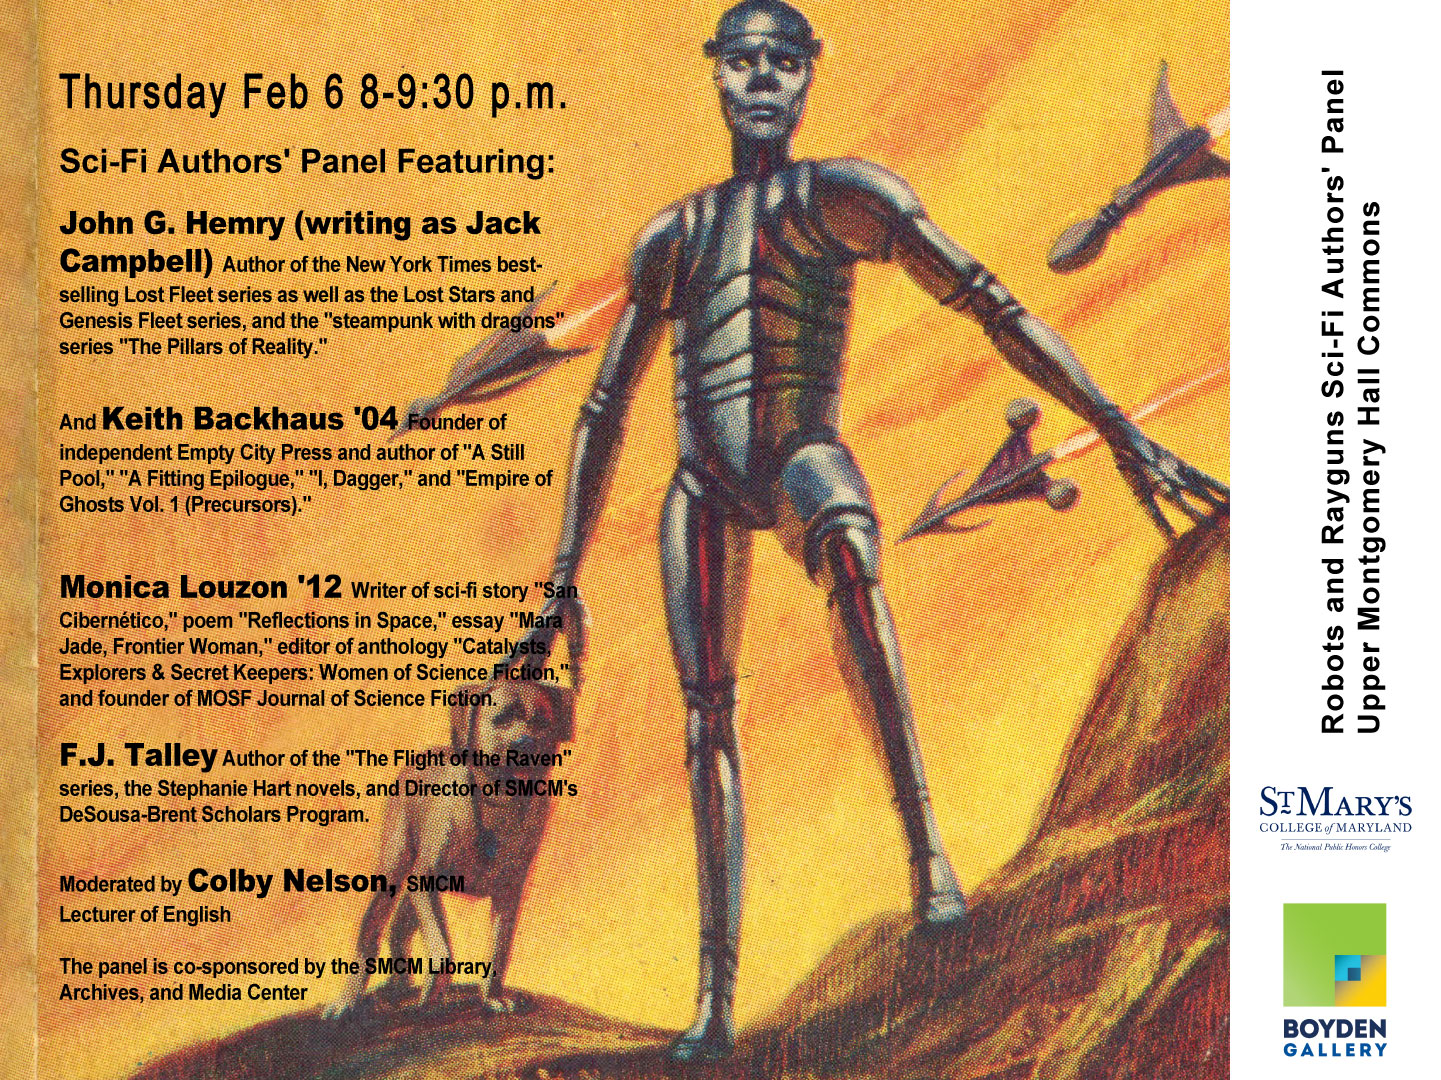 SMCM Robots and Rayguns Sci-Fi Authors' Panel Thursday Feb 6 2020